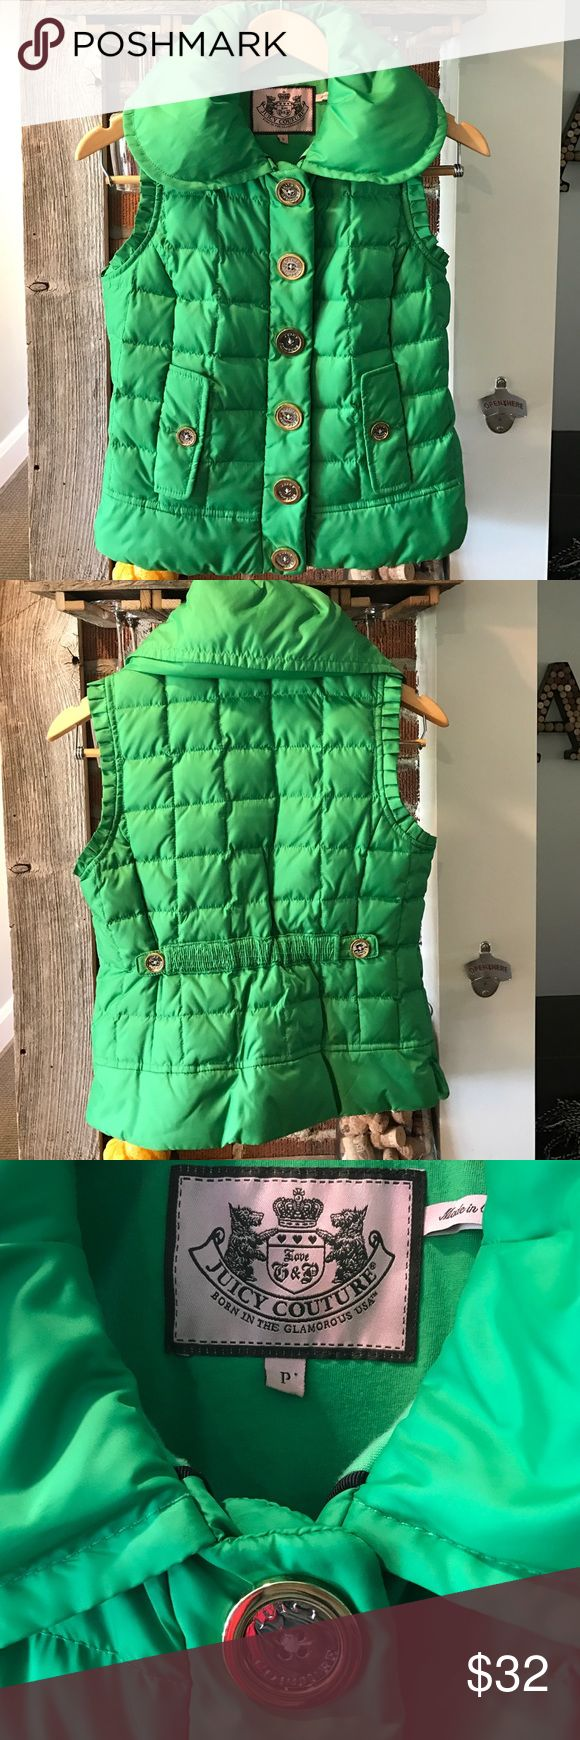 "Juicy Couture vest Cute juicy couture puffer vest great condition, only worn for a few st Patrick's parades! The size tag says ""P"" which is an xs in juicy couture sizing Juicy Couture Jackets & Coats Vests"